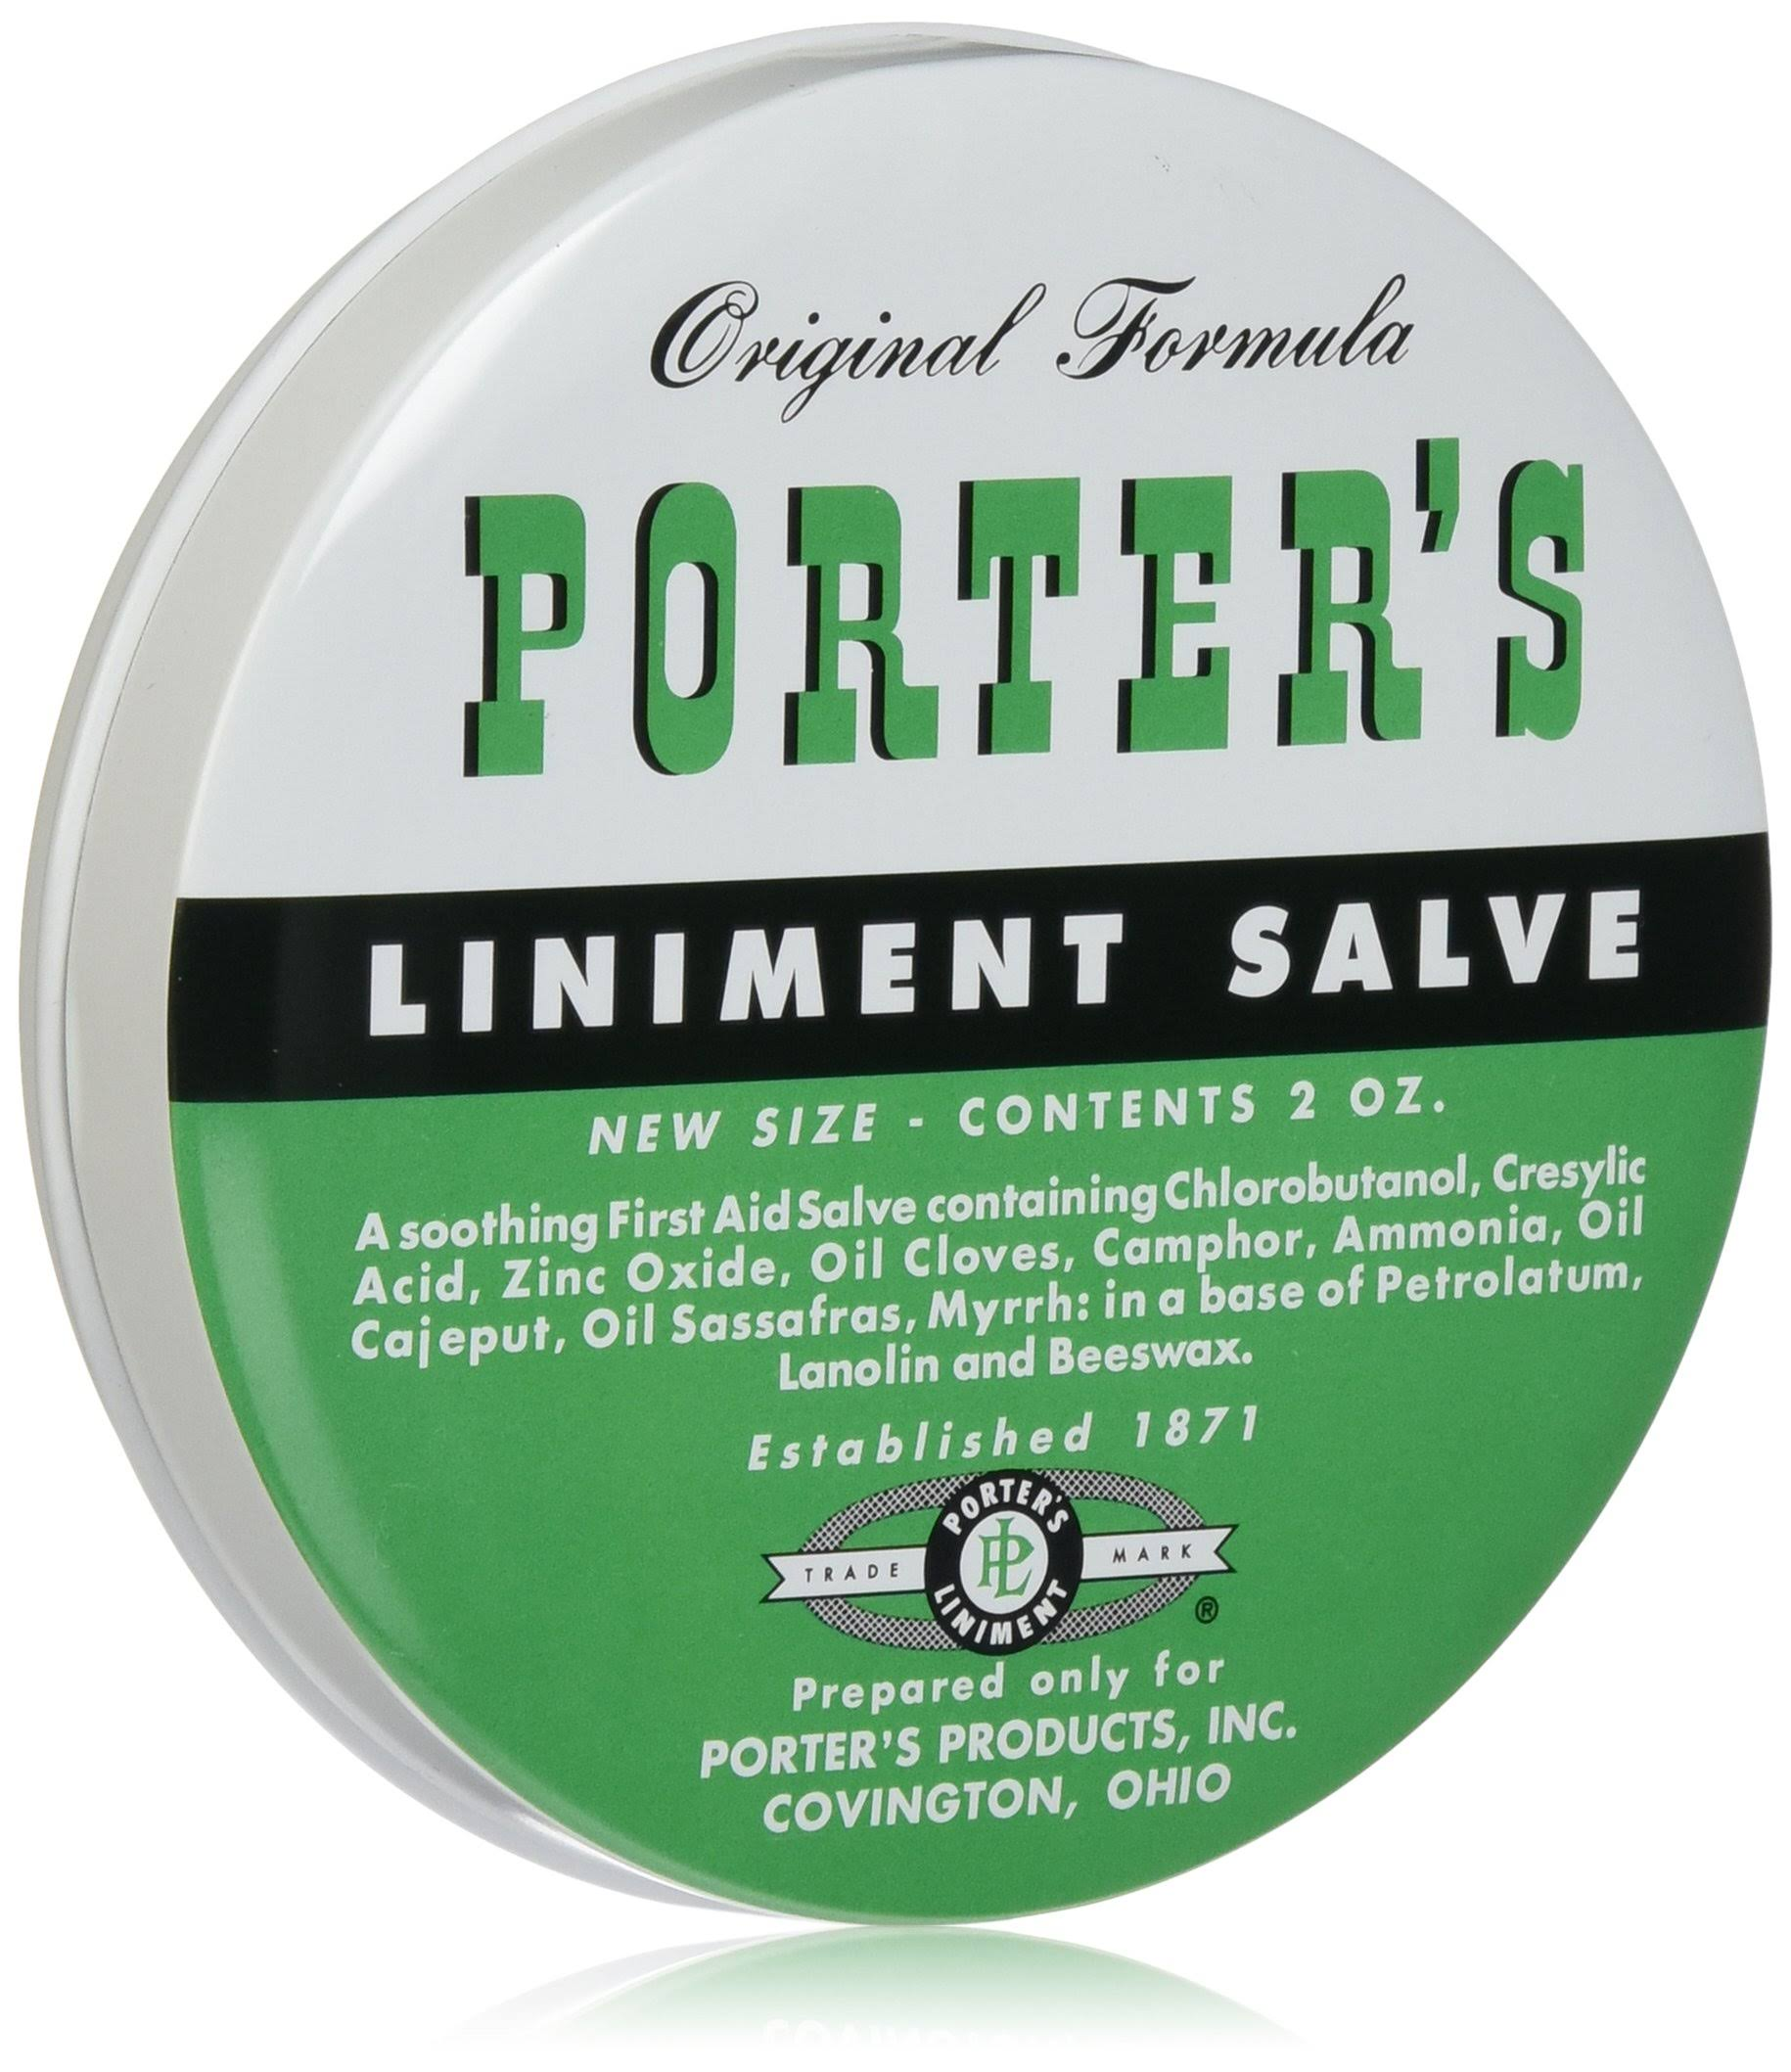 Orginal Formula Porter's Liniment Salve - 2oz